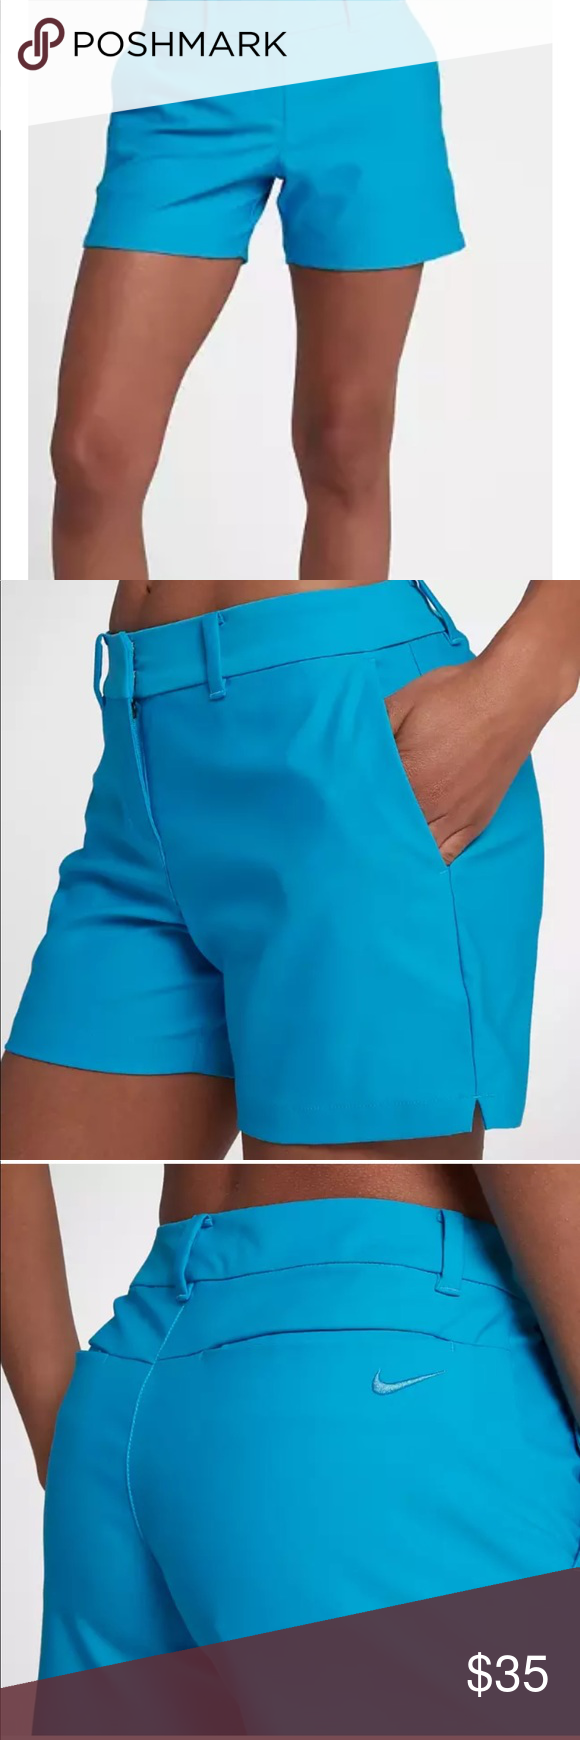 """a5127cfb254 Women's Nike Flex 4.5"""" Woven Golf Shorts BRAND NEW WITH TAGS Nike ..."""